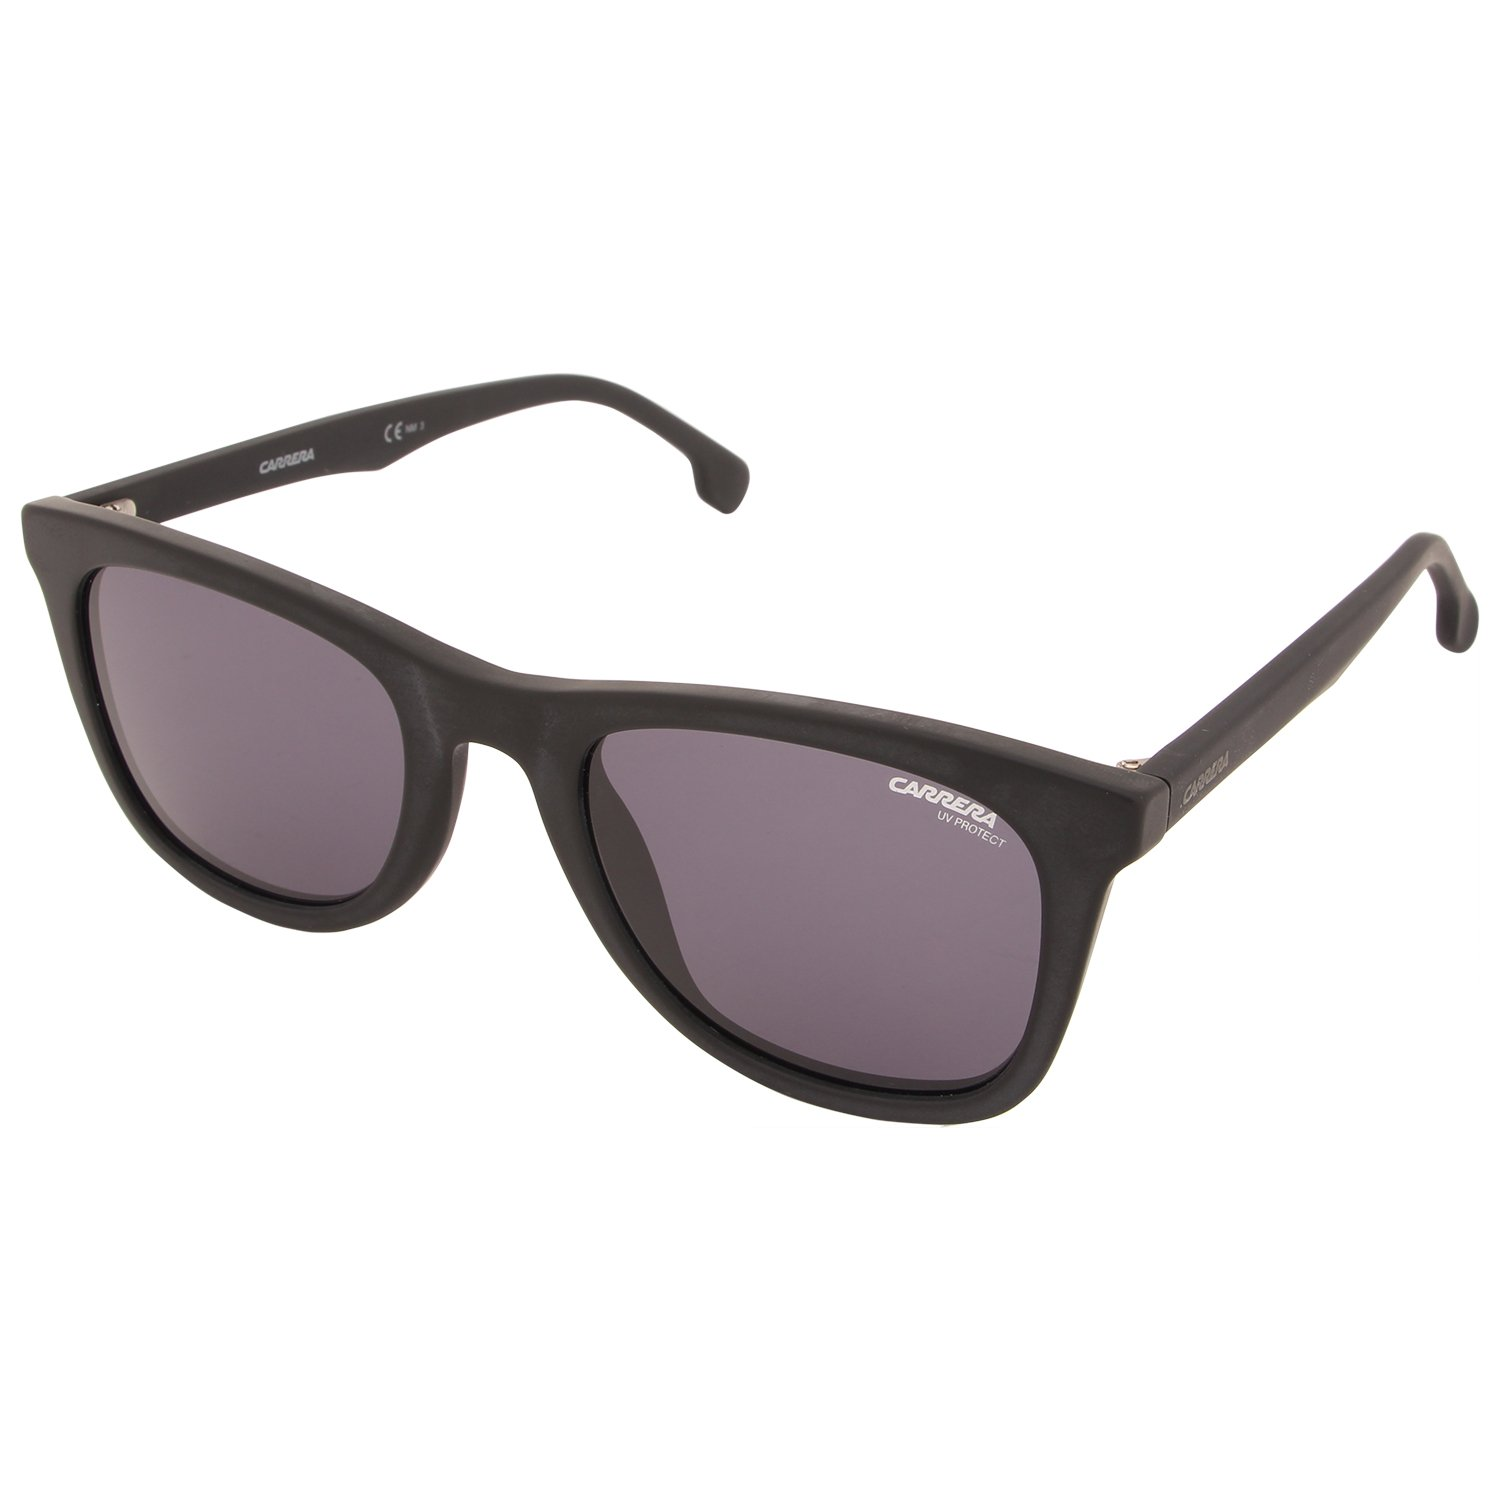 Carrera 134/S IR 003 Gafas de sol, Negro (Matt Black/Grey Blue), 51 Unisex-Adulto